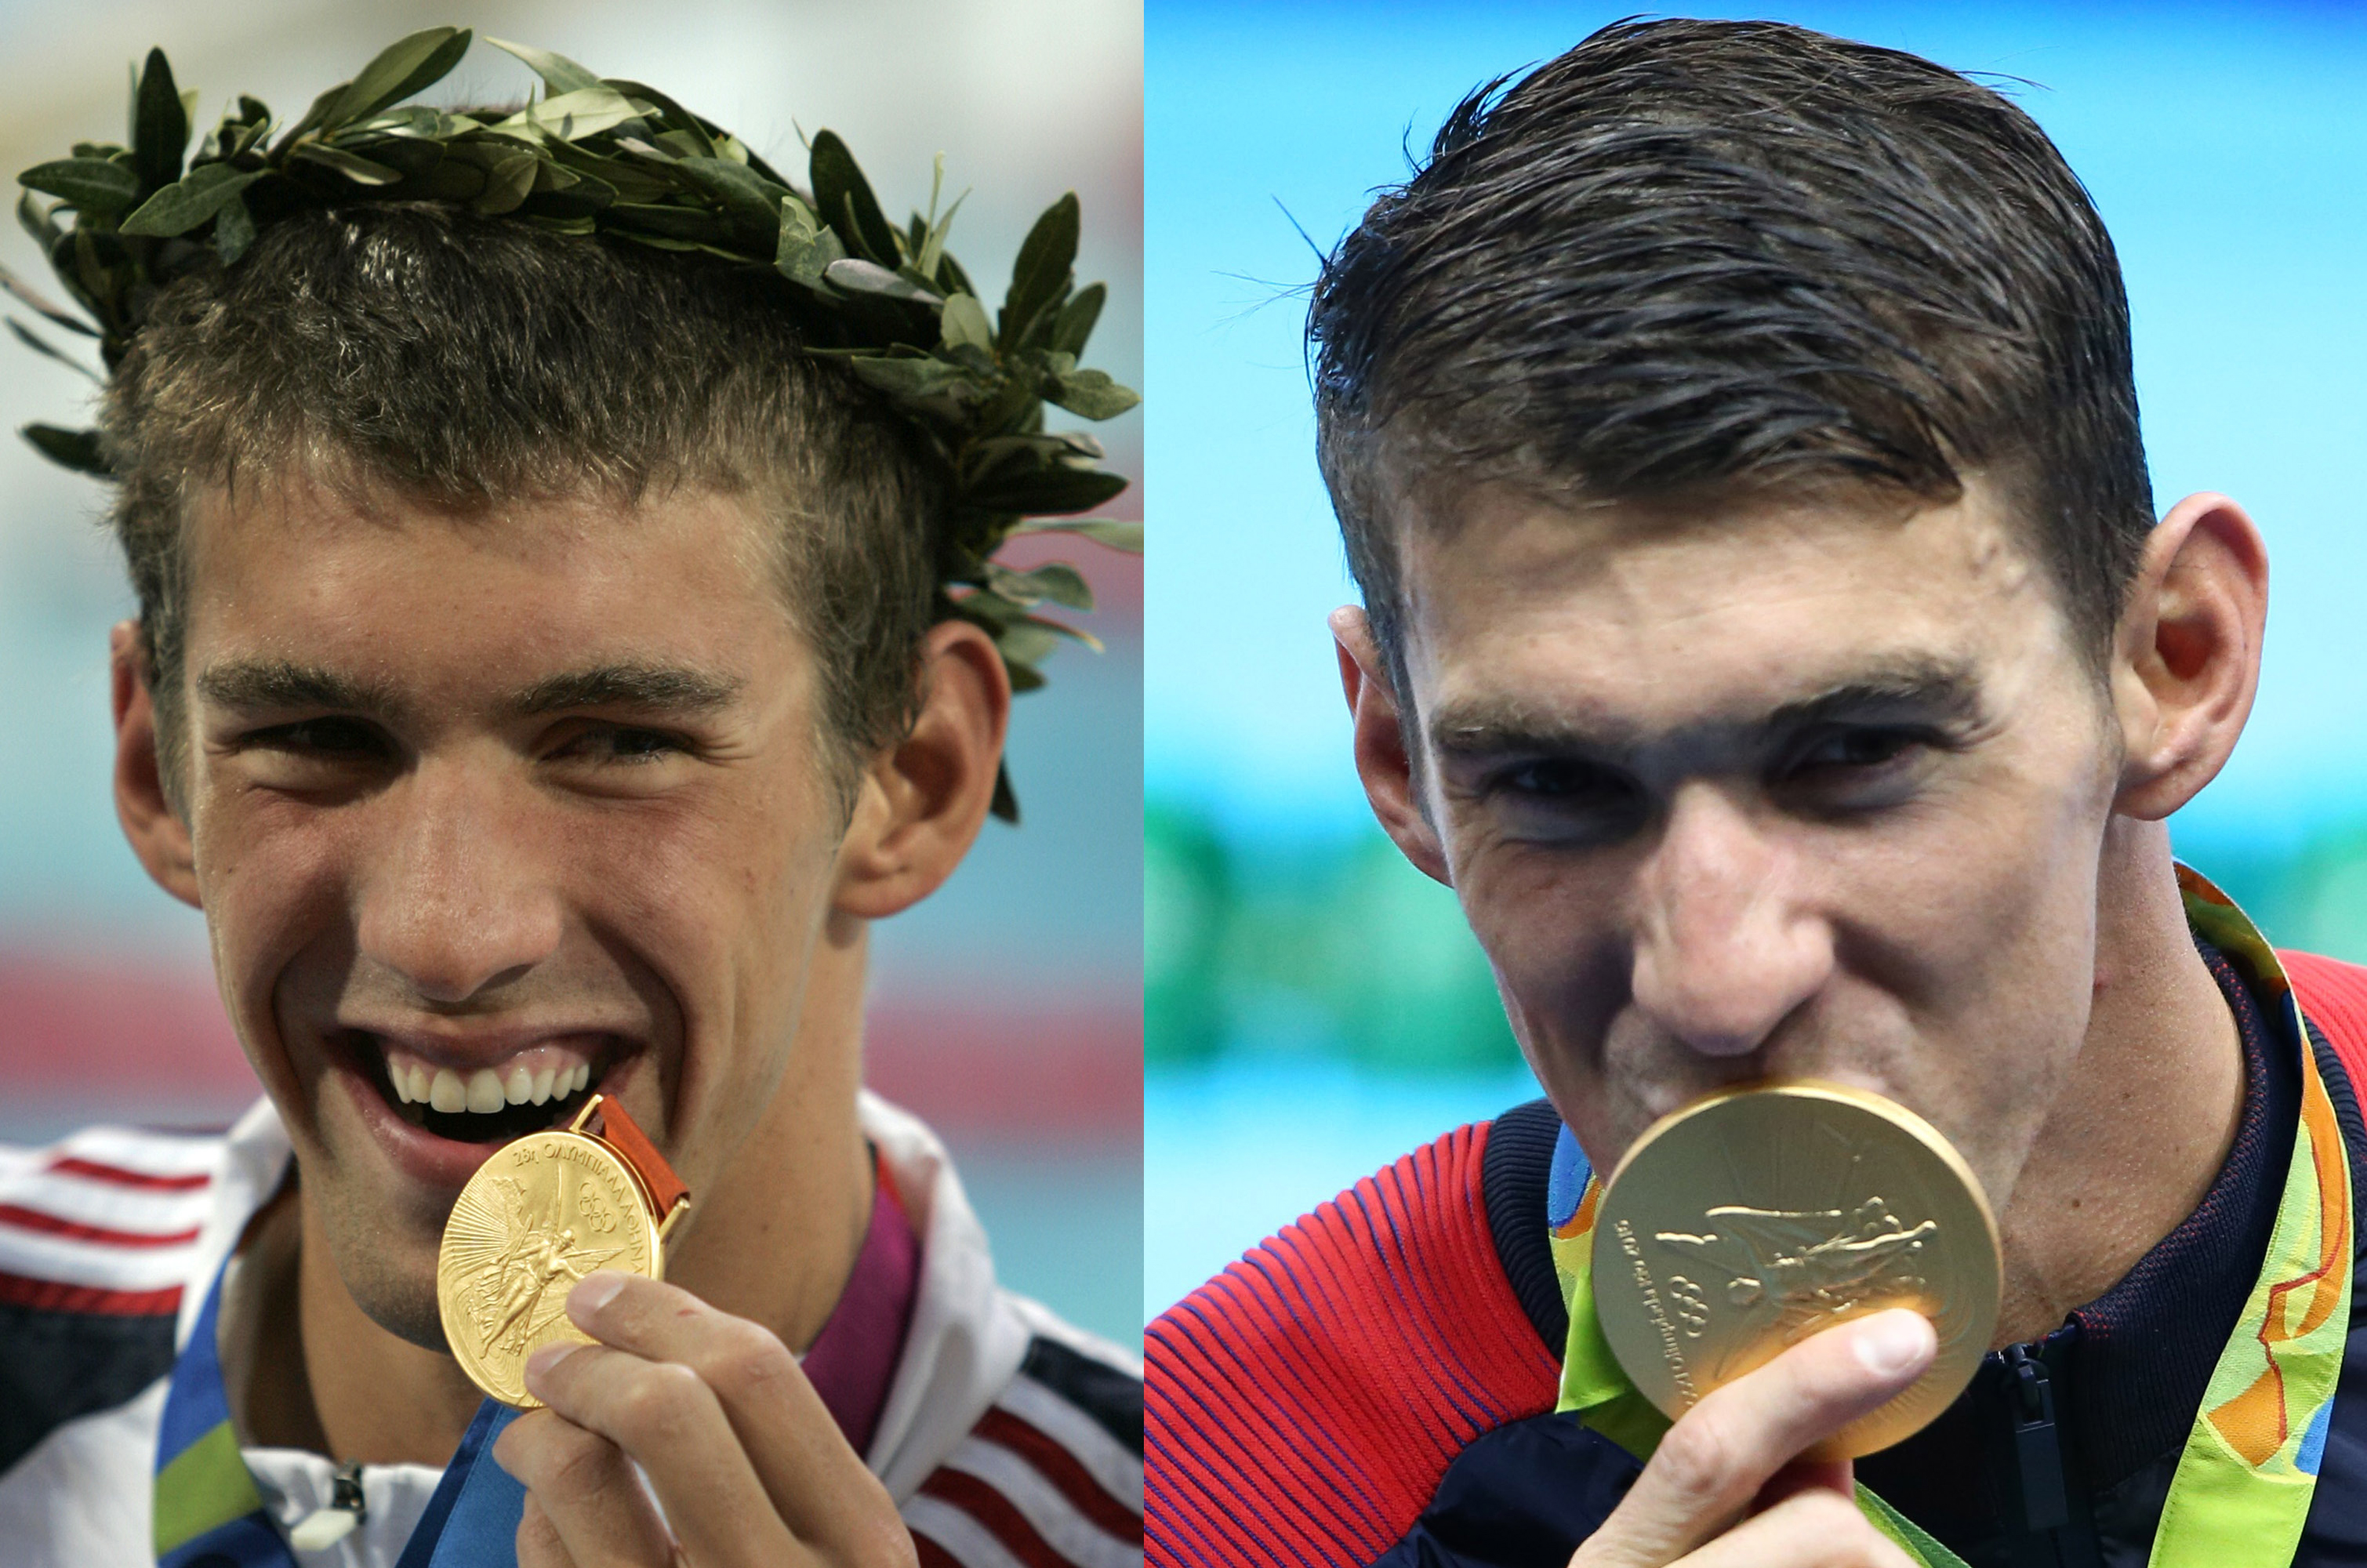 Michael Phelps gold medal 2004 and 2016